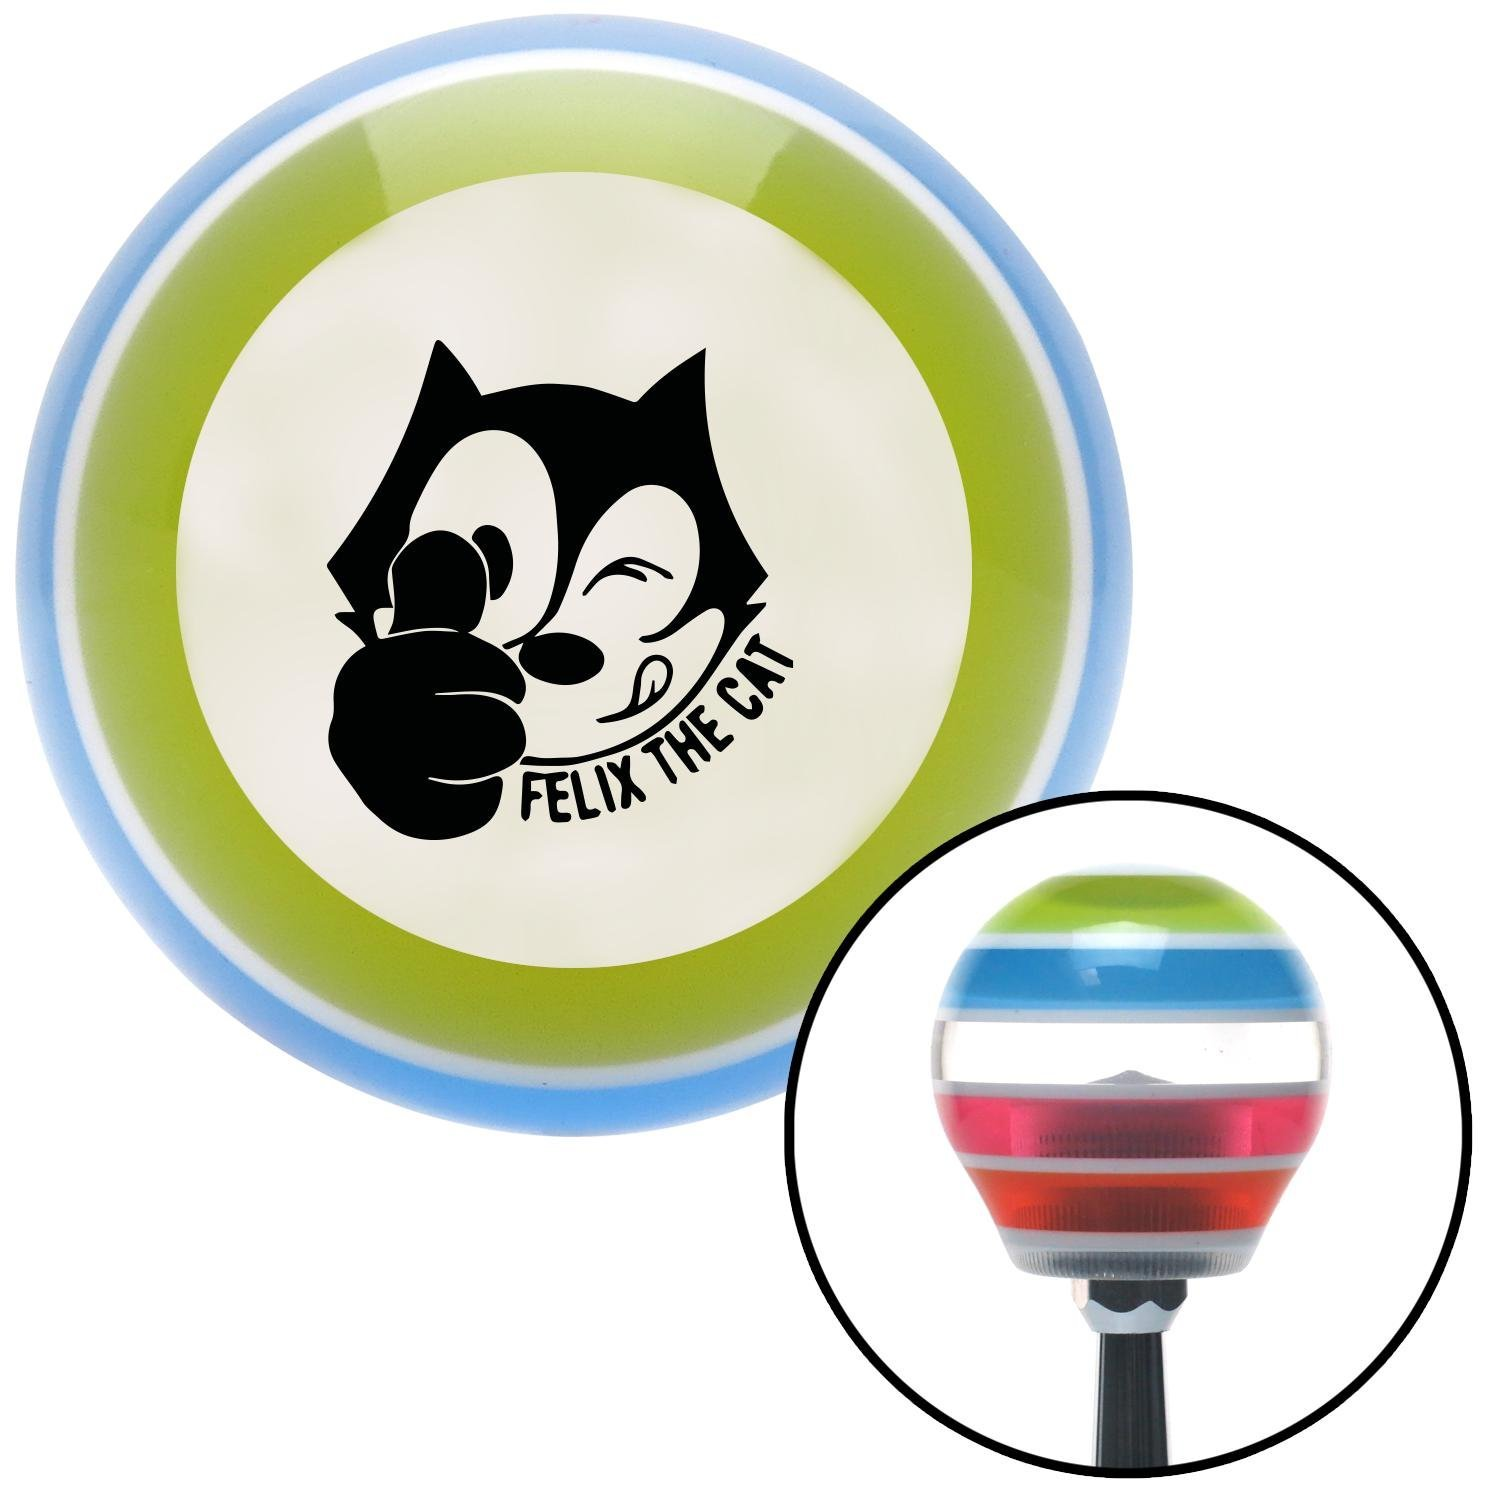 Black Felix The Cat Thumbs Up American Shifter 135667 Stripe Shift Knob with M16 x 1.5 Insert